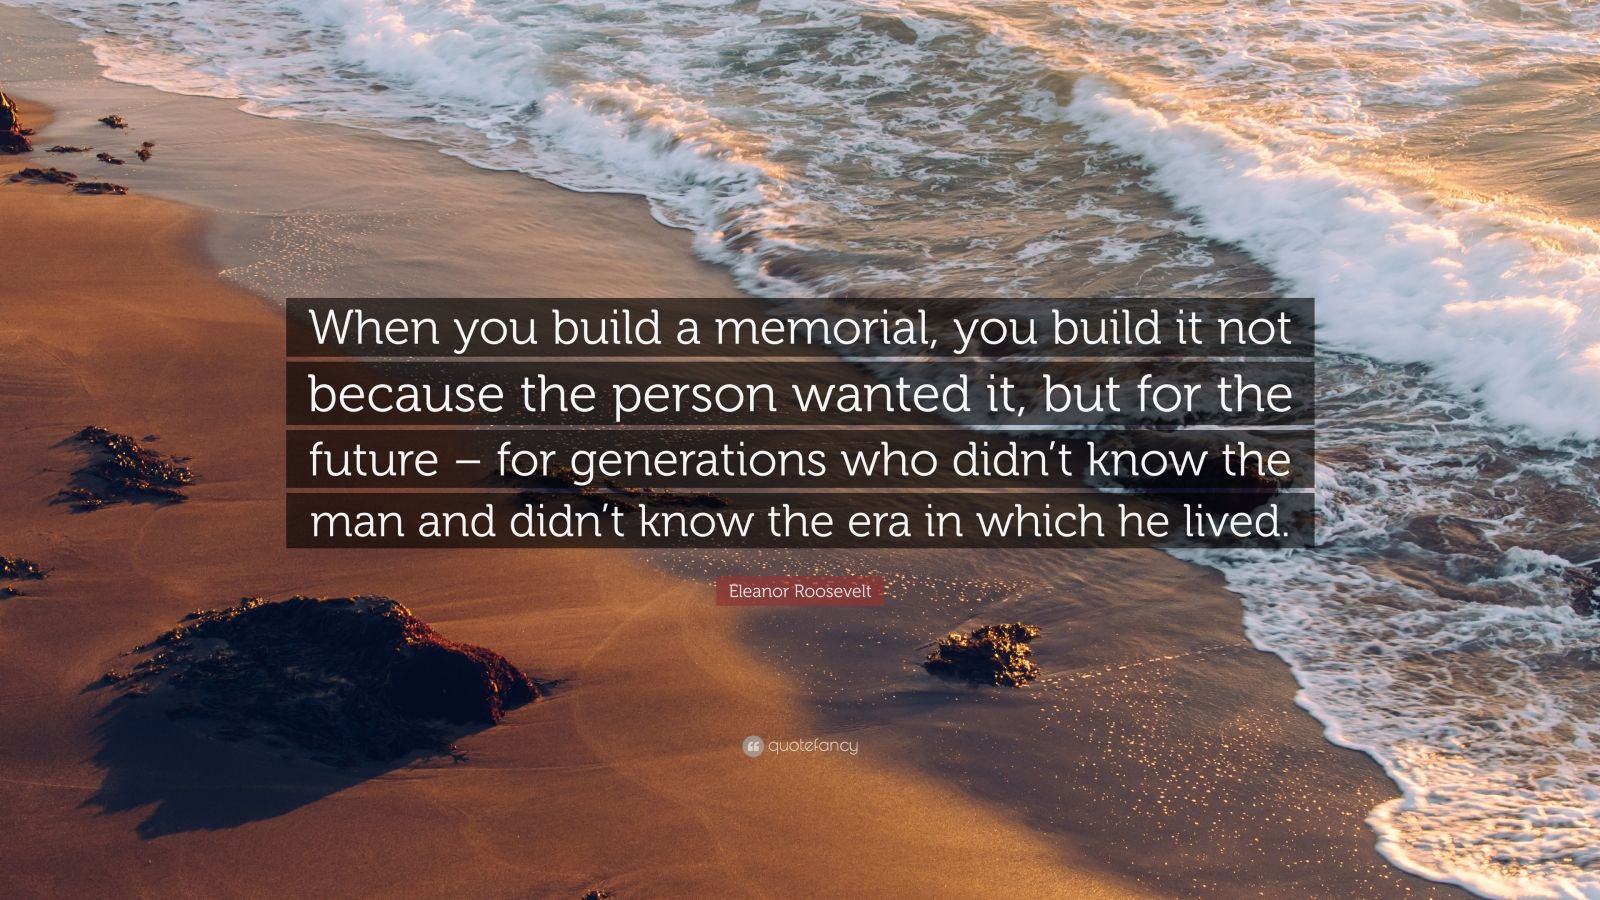 """Eleanor Roosevelt Quote: """"When you build a memorial, you build it not because the person wanted it, but for the future – for generations who didn't know the man and didn't know the era in which he lived."""""""